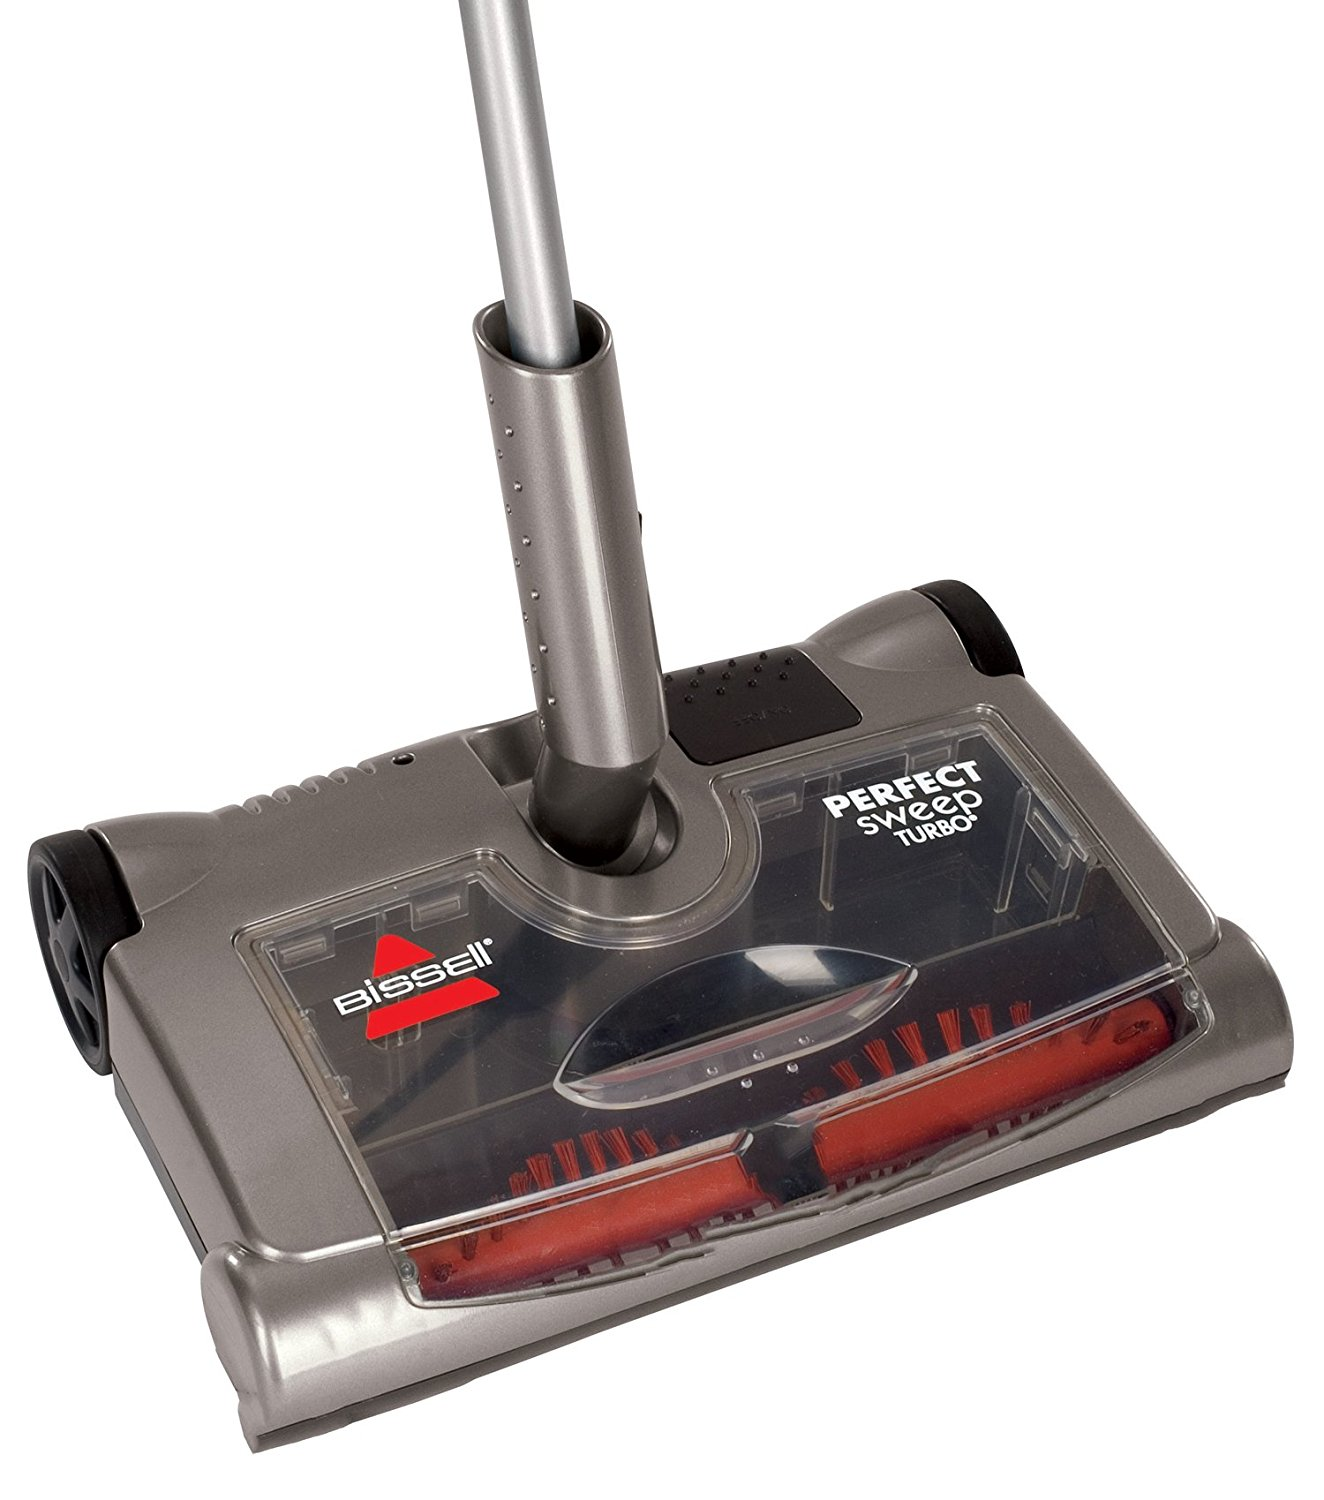 Bissell Perfect Sweep Turbo Sweeper Harco Incentives